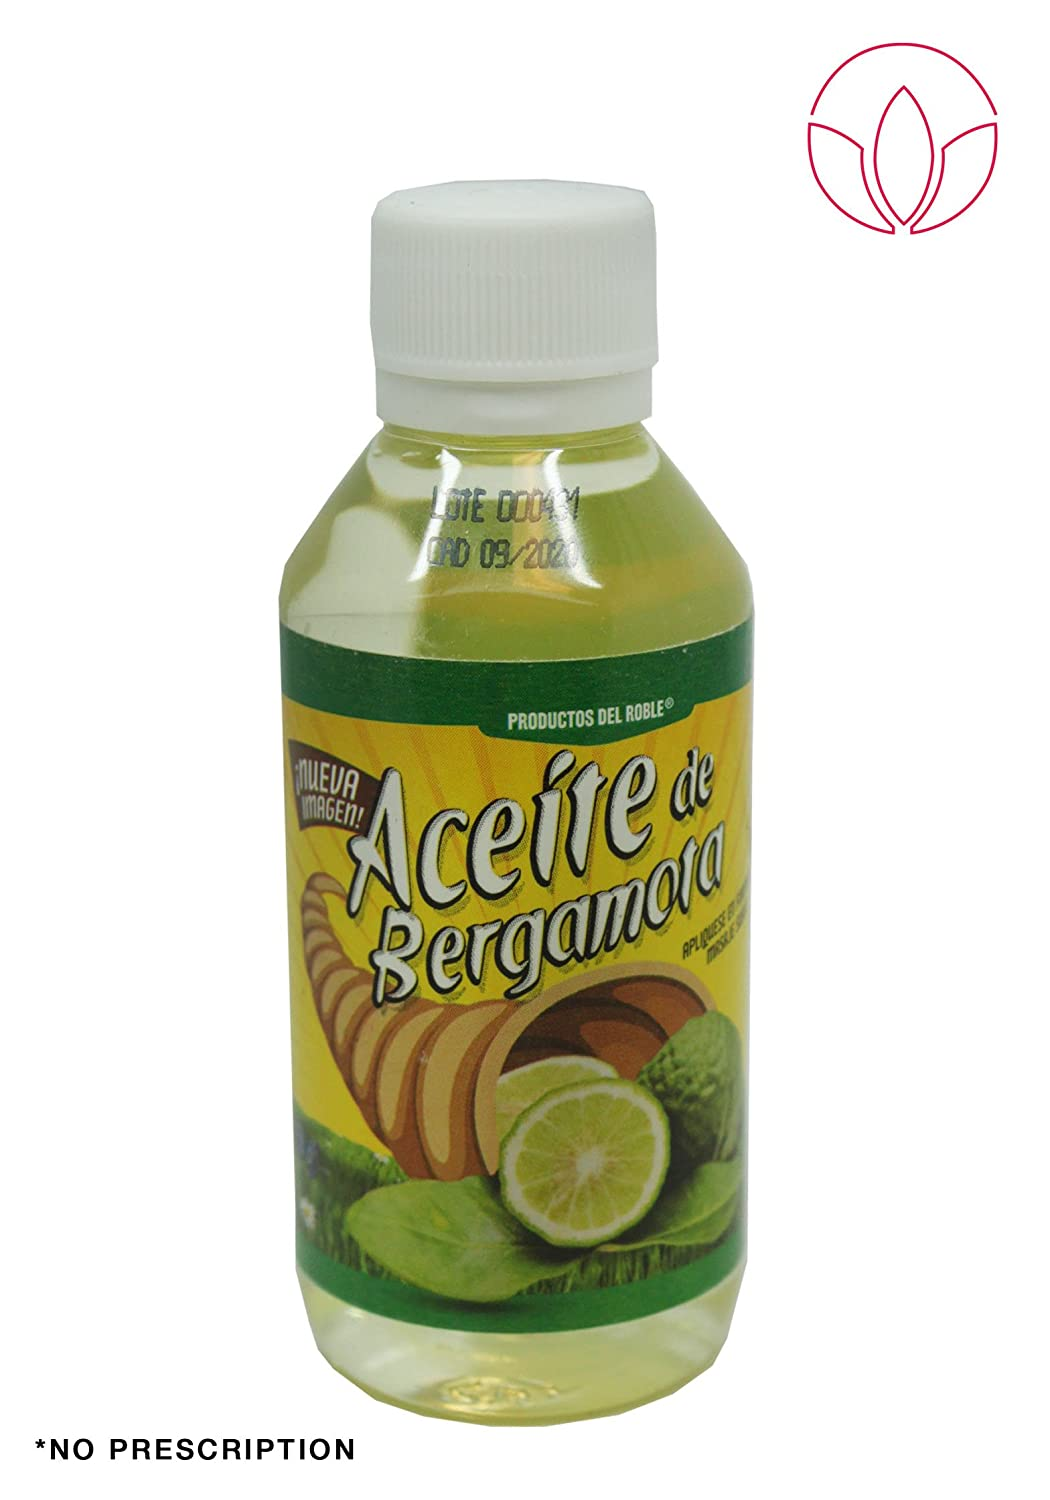 Aceite de bergamota 100% Natural Bergamot Oil 120 ml. Helps the growth of beard and mustache.